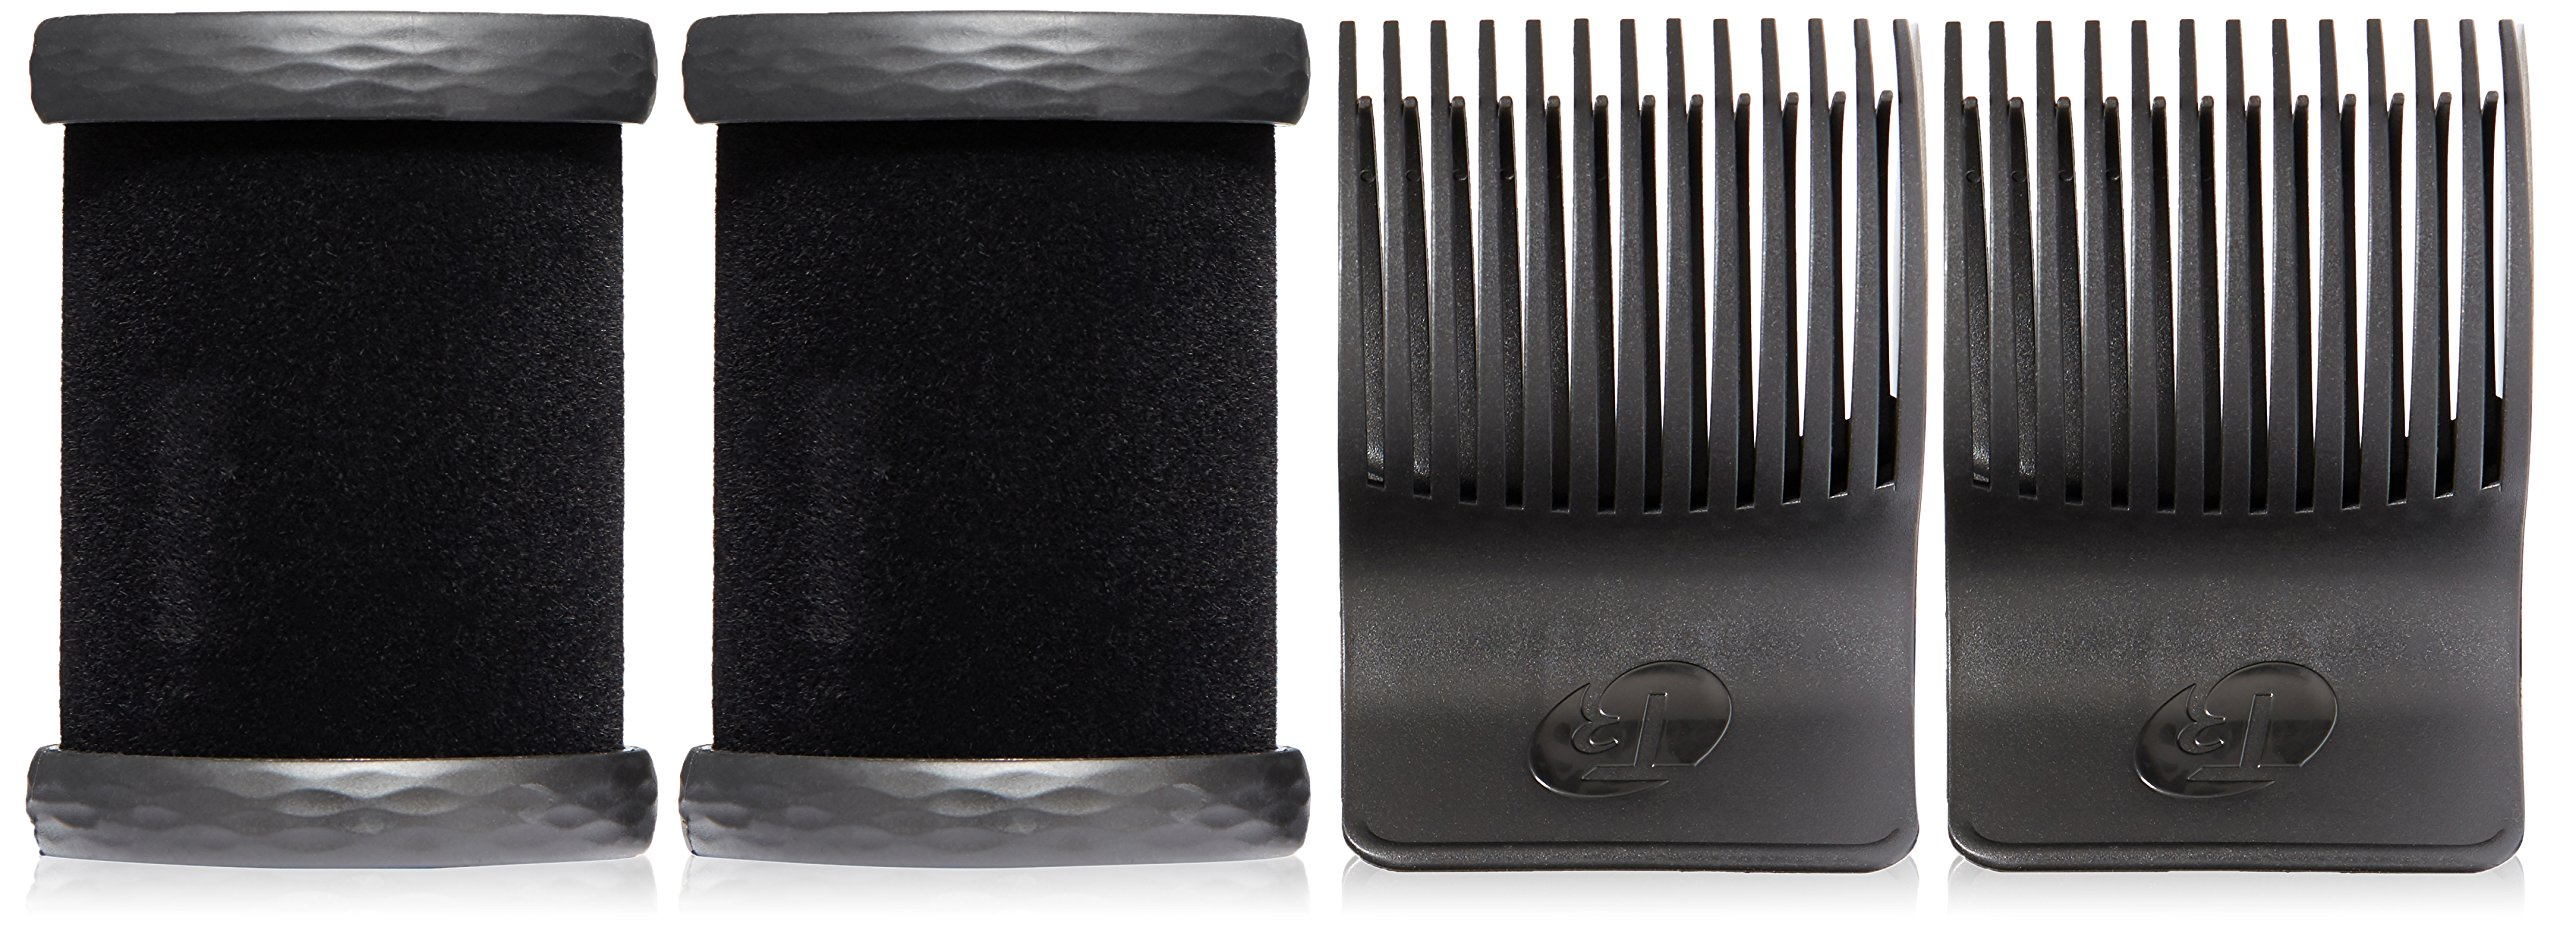 T3 Micro Volumizing Hot Rollers, 1.75 Inch, 2 Count